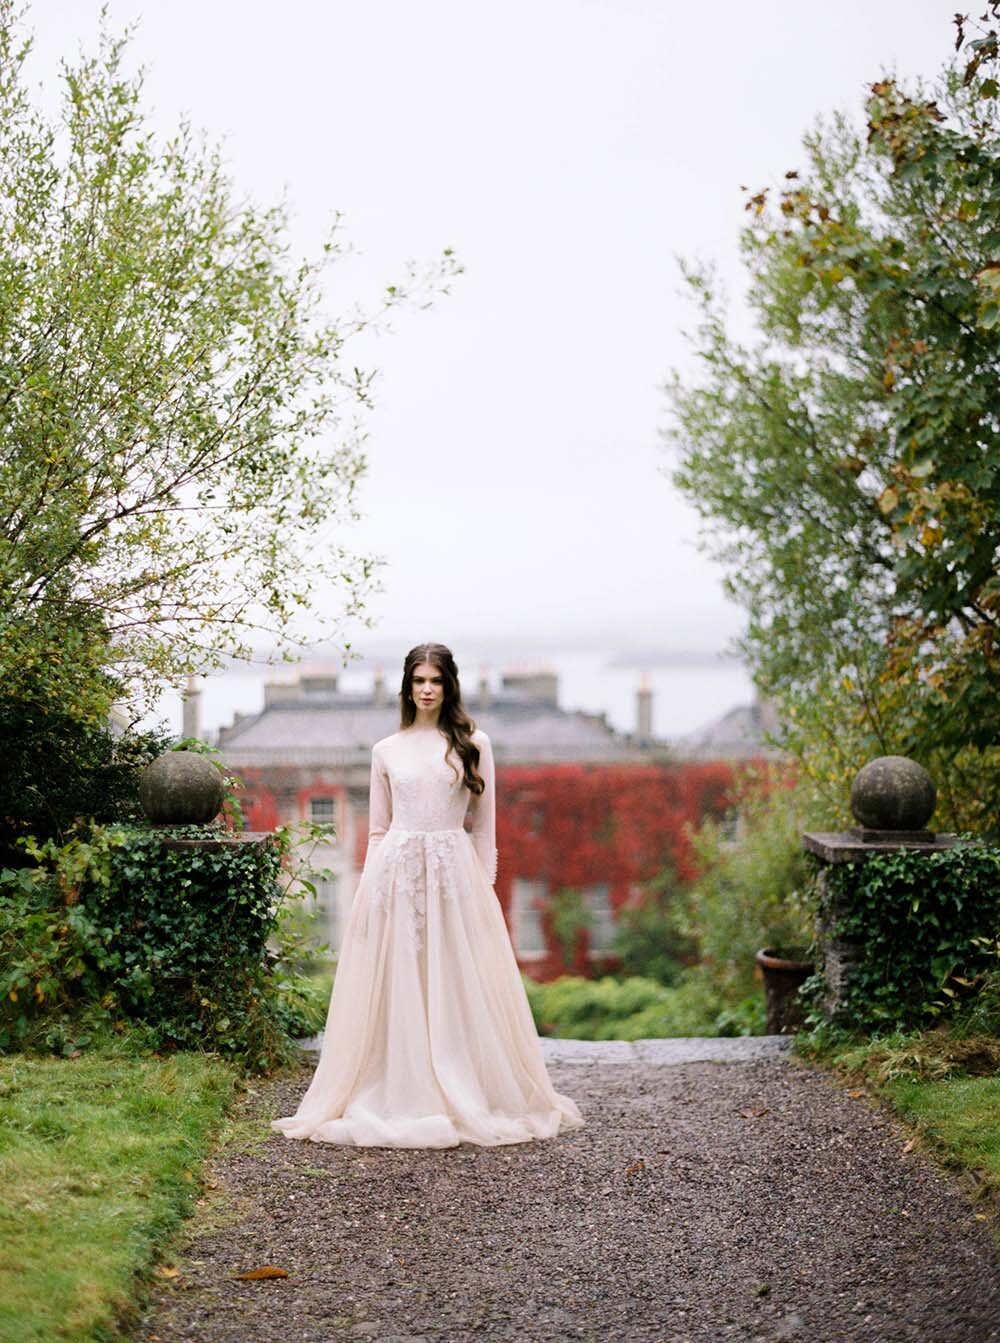 Bantry Ireland bride standing in Cathy Telle Gown at the top of the garden stairs overlooking Bantry House